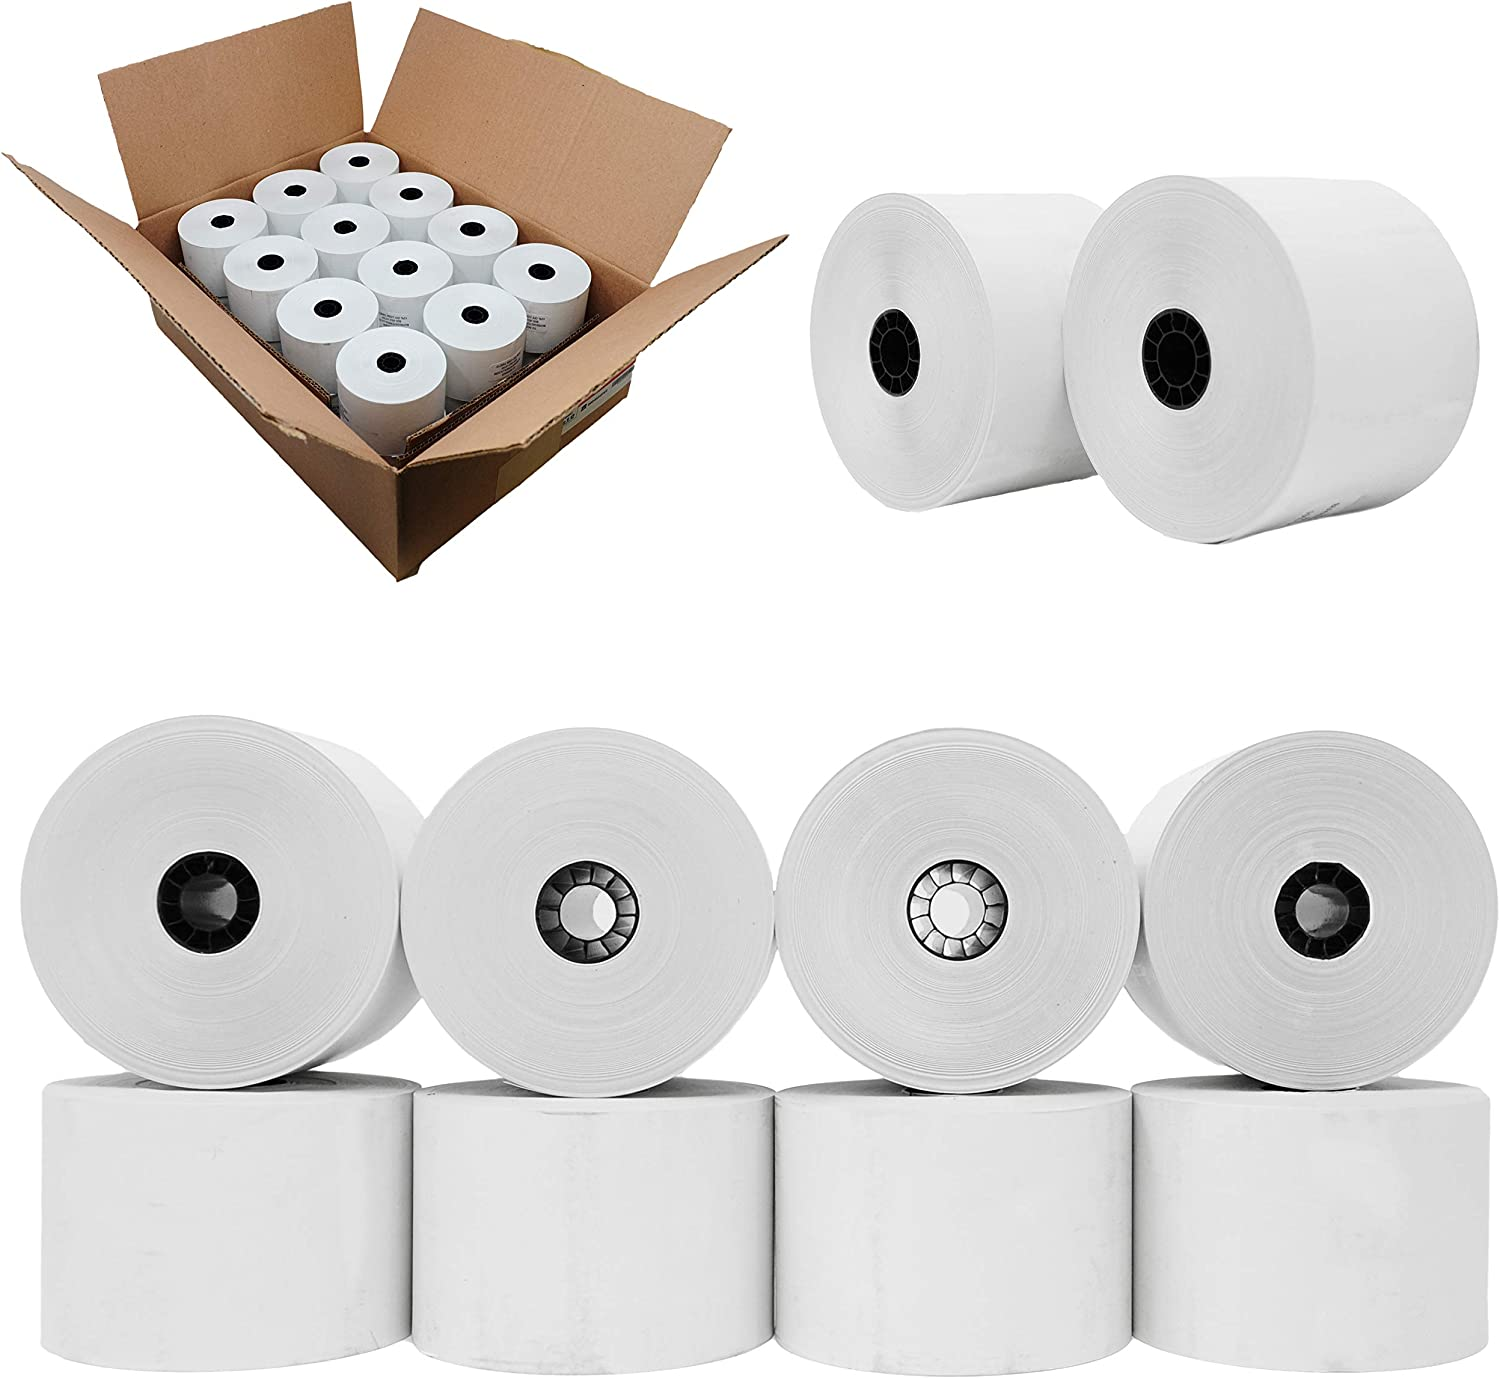 24 Rolls 2 Branded goods 5 16 x 356 Thermal Max 71% OFF BPA Th Free Paper at - Pay